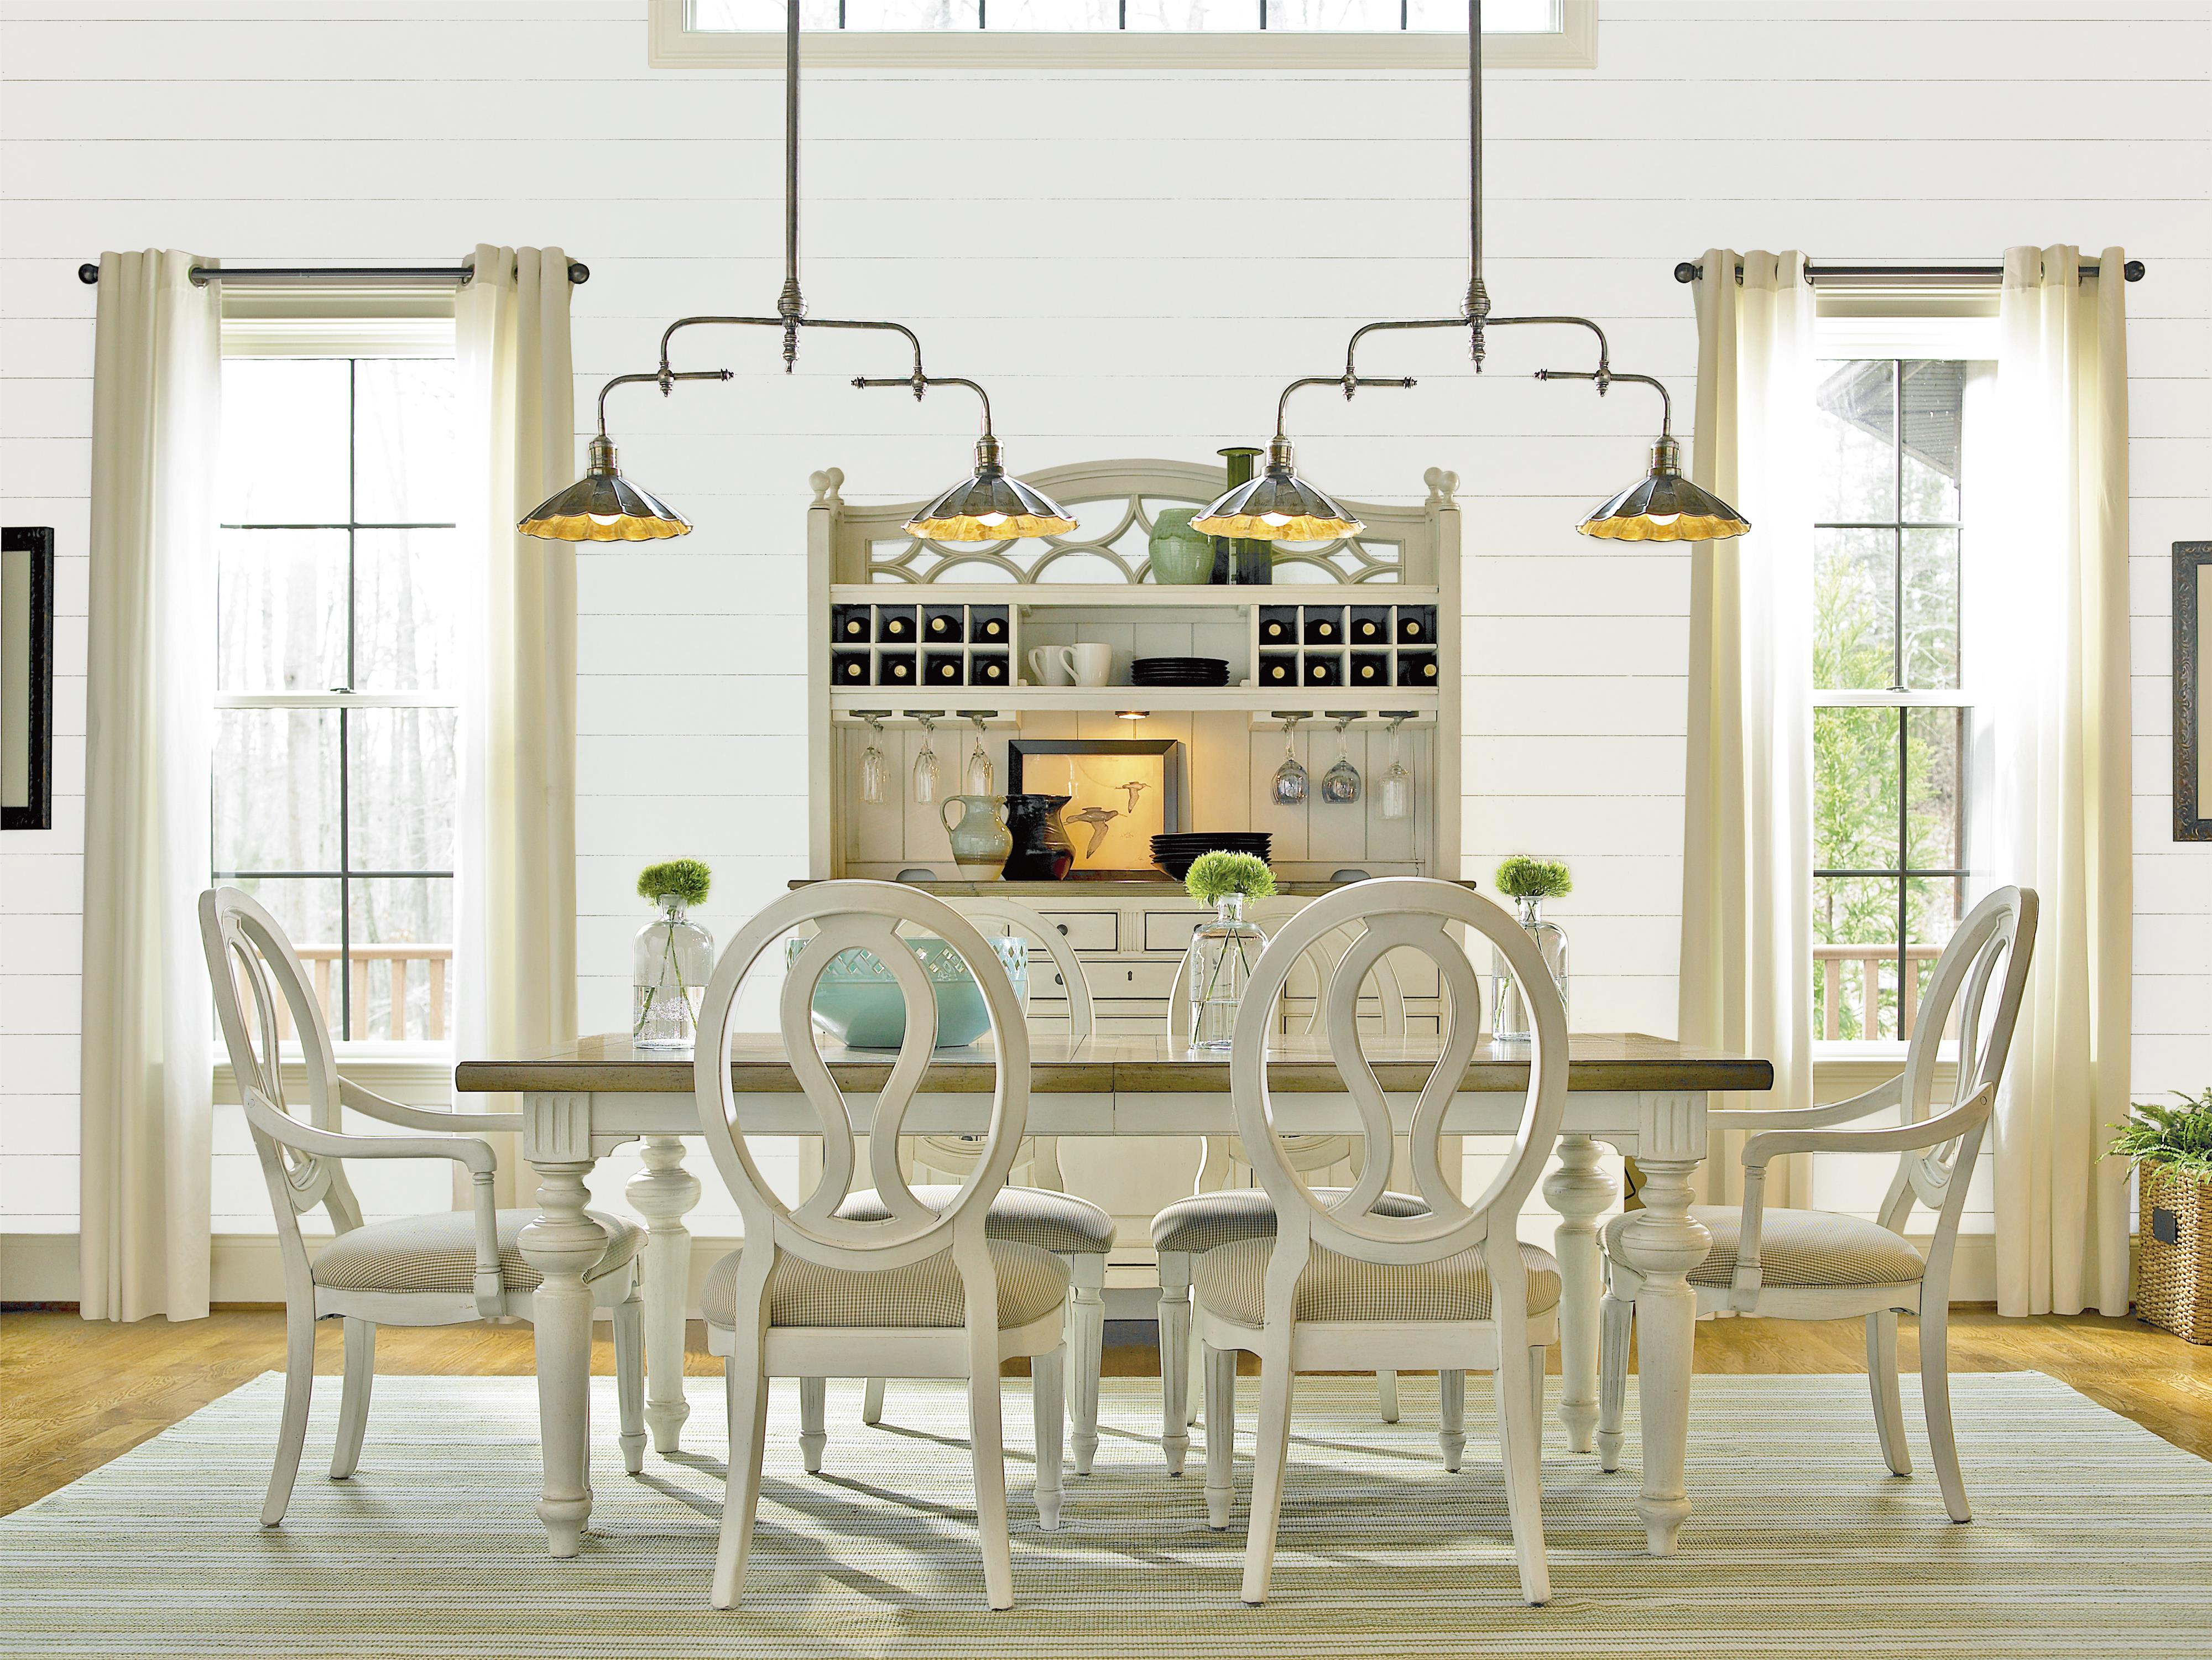 Morris Home Furnishings Summer Shade Summer Shade 5-Piece Dining Set - Item Number: 358841077